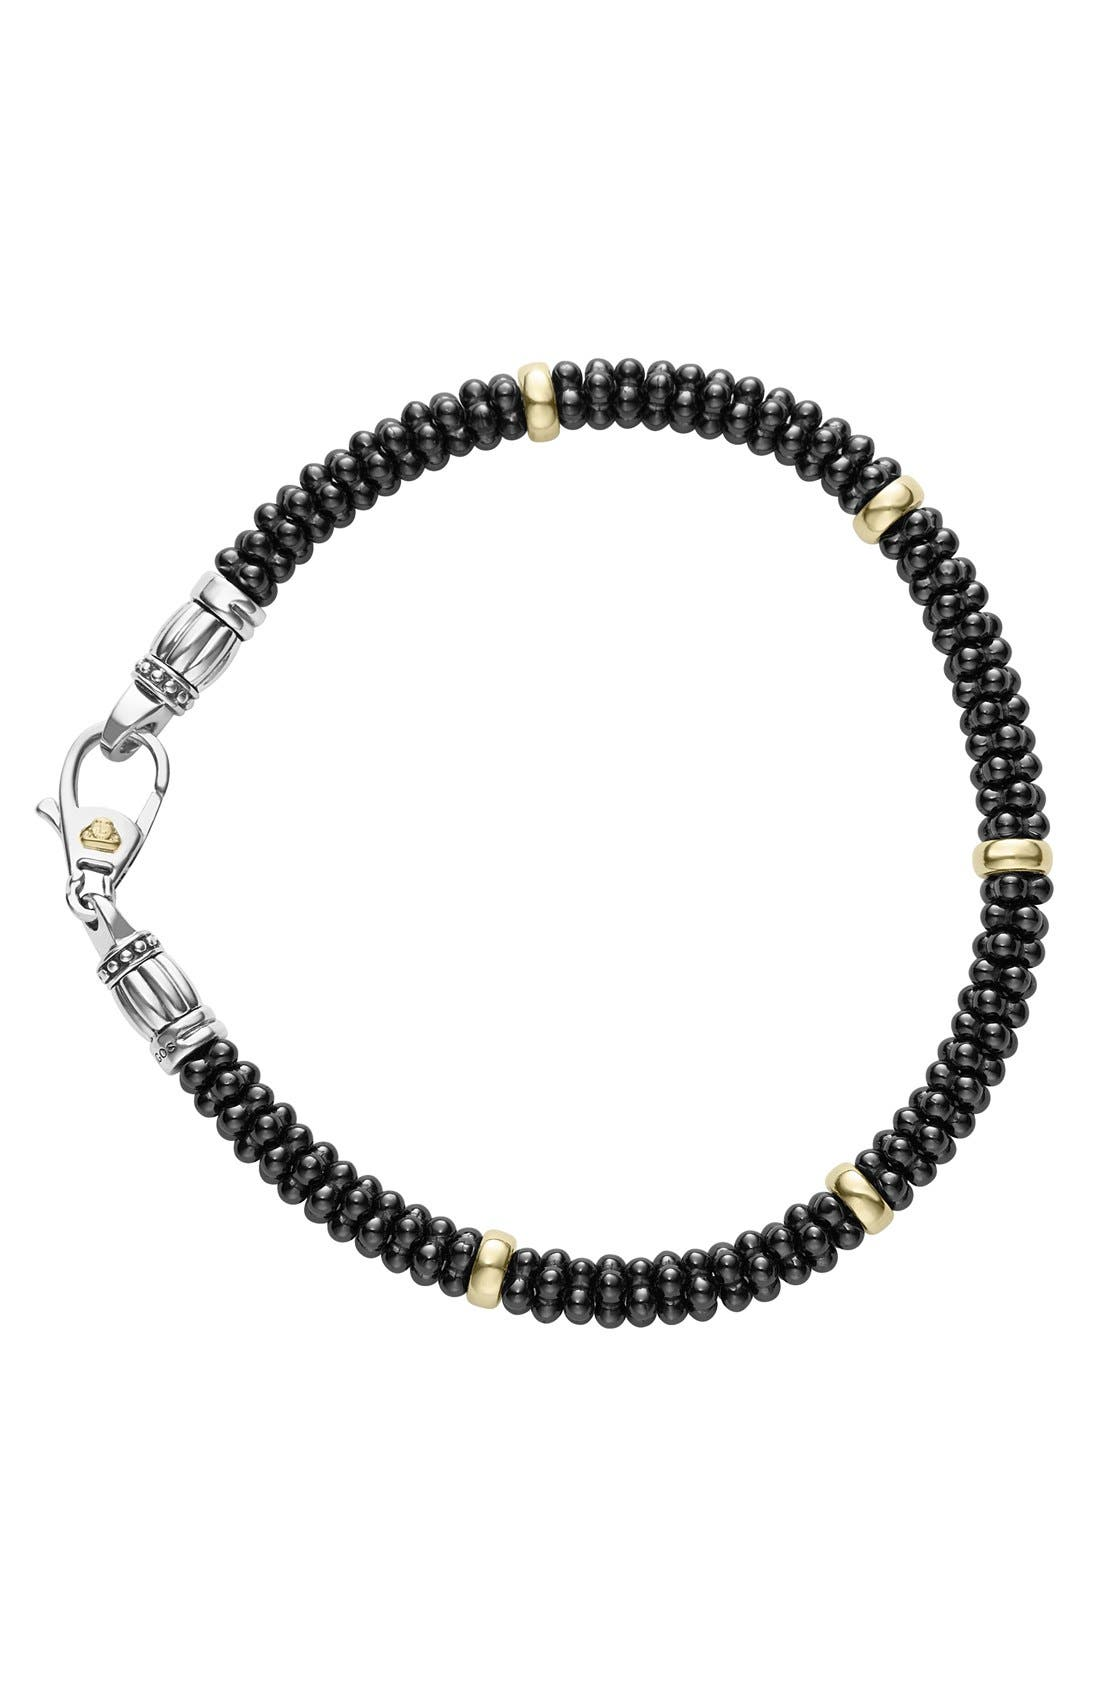 'Caviar Gold' Bracelet,                             Alternate thumbnail 3, color,                             BLACK/ GOLD